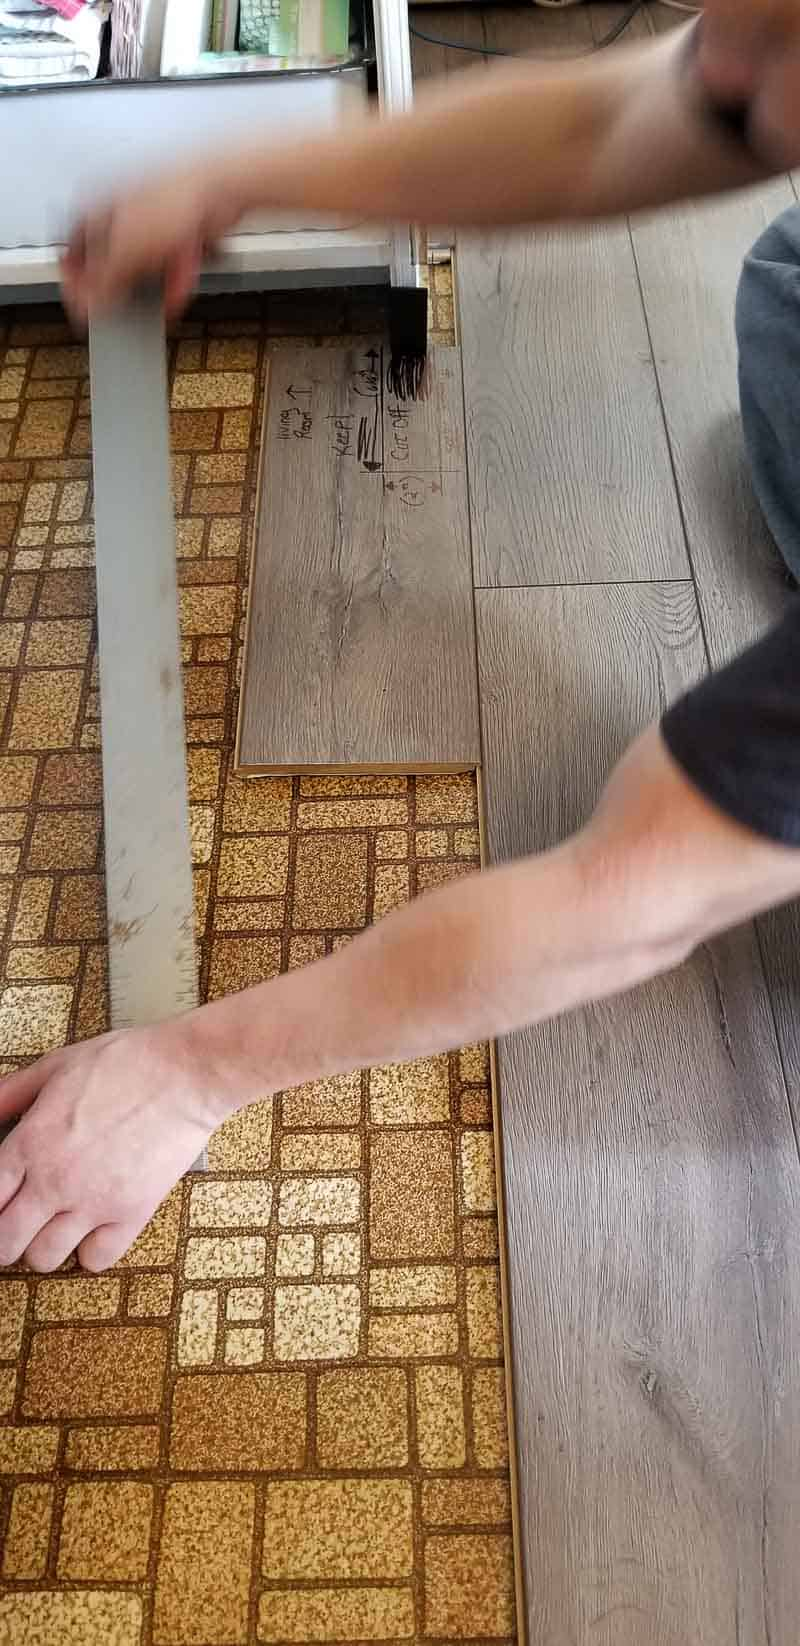 Large carpenter square on floor for measuring cuts